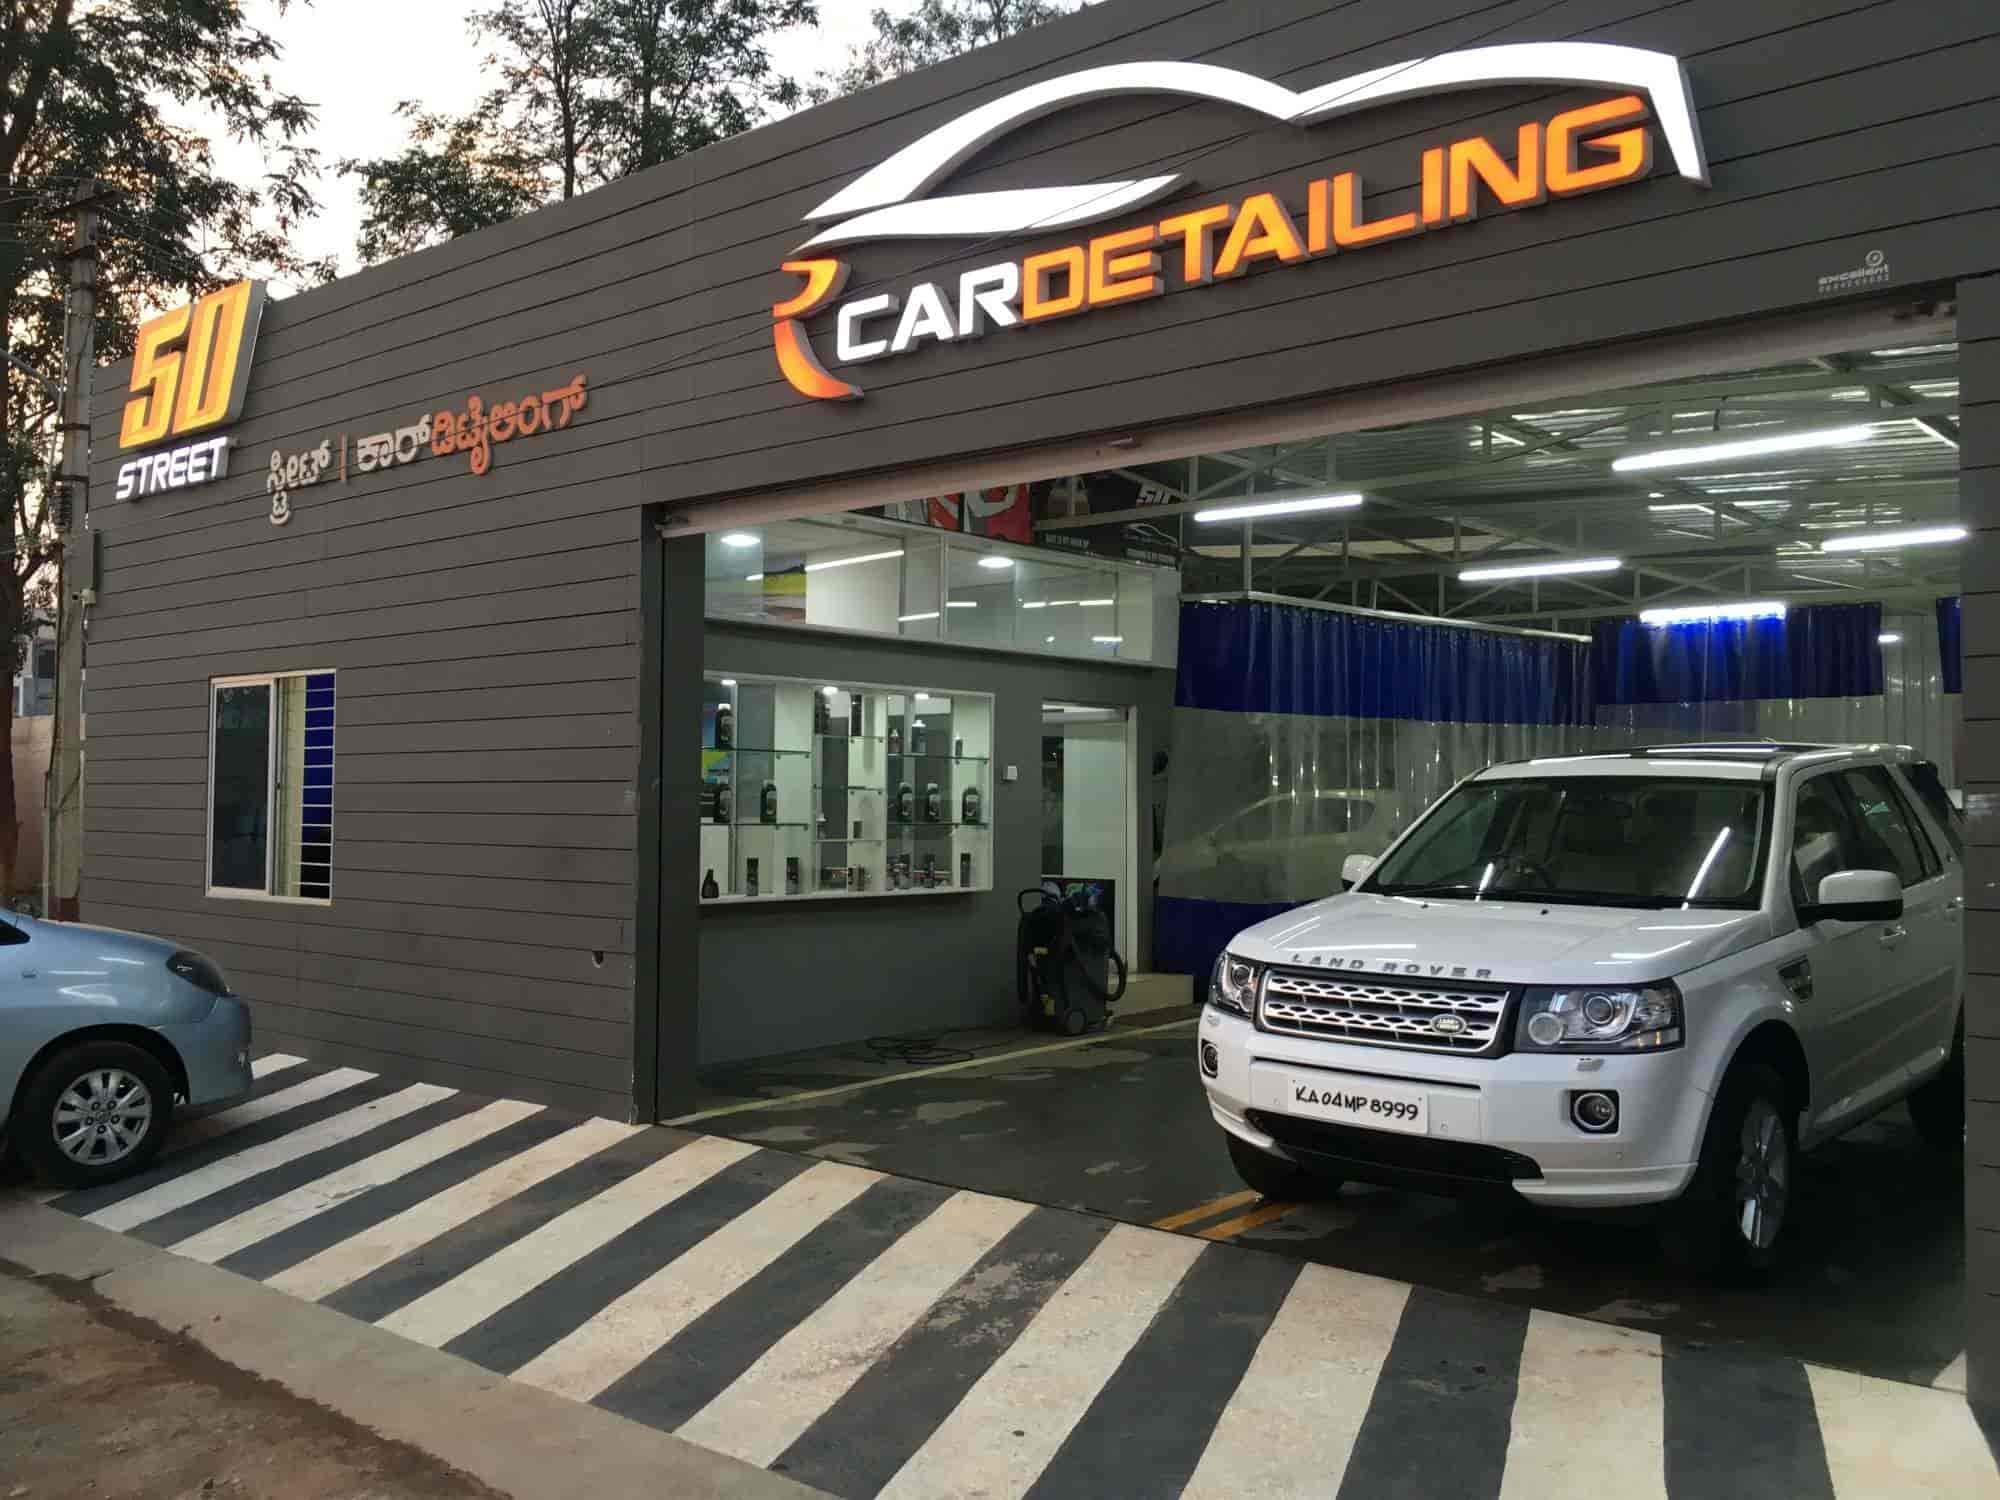 Car Detail Shop >> 50 Street Car Detailing Sharadadevi Nagar Car Washing Services In